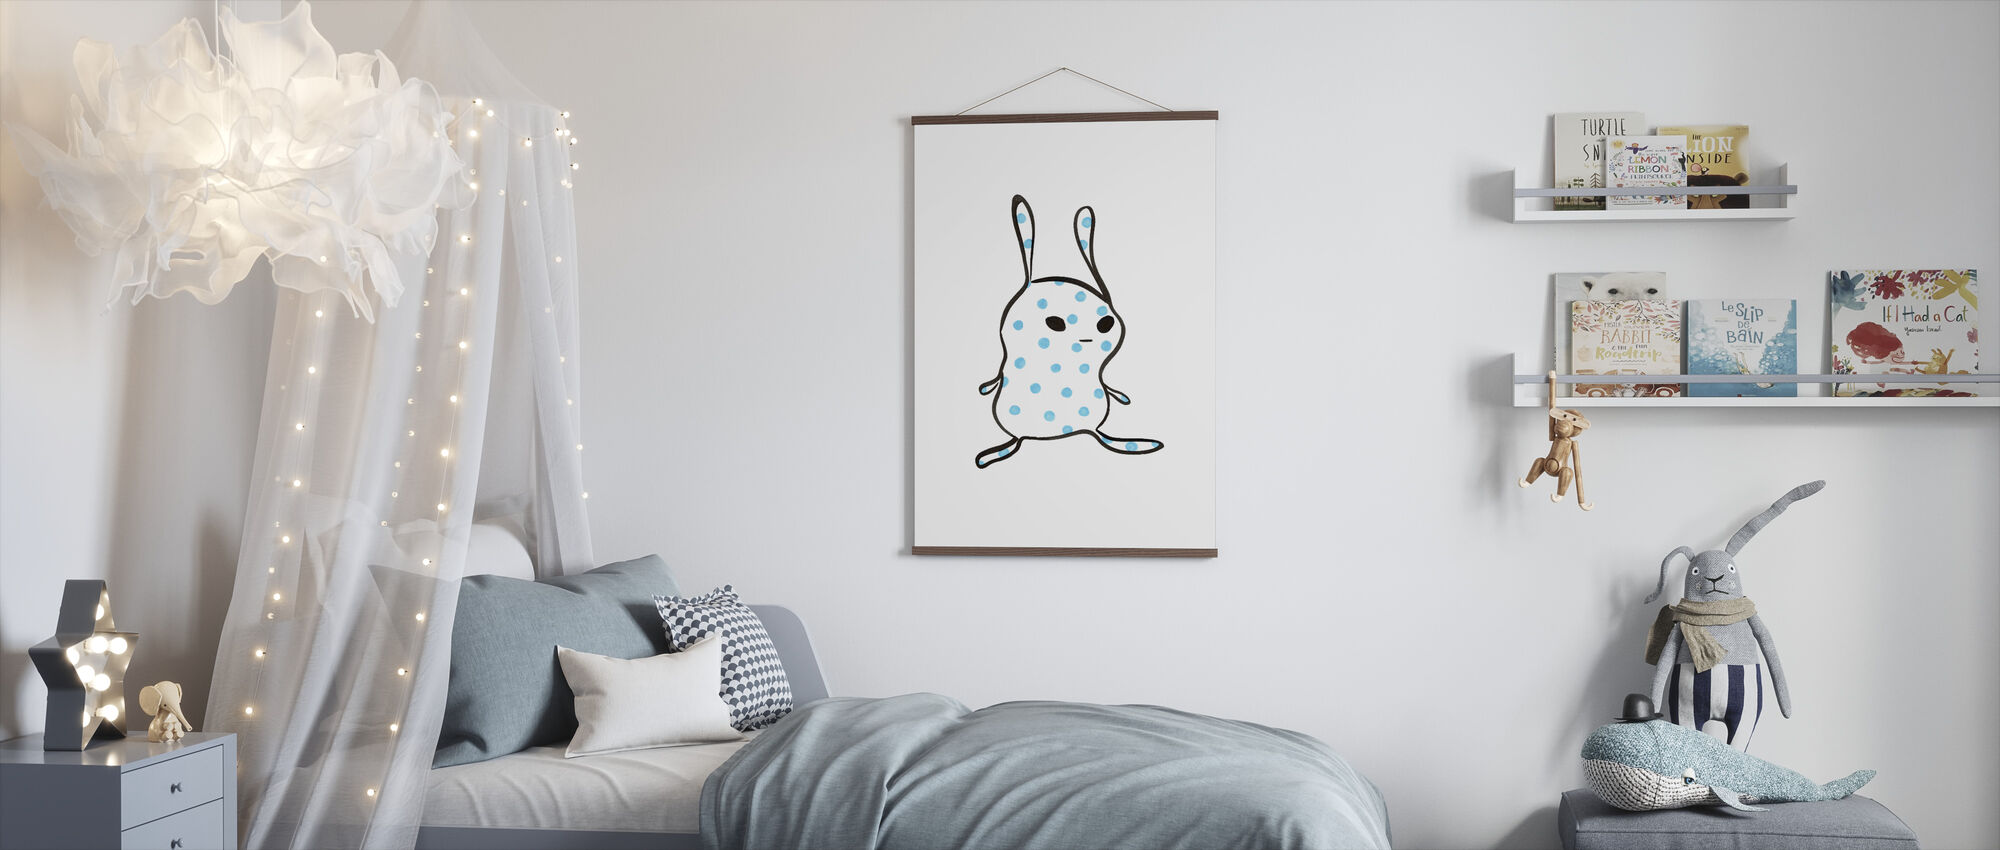 Bump - Poster - Kids Room